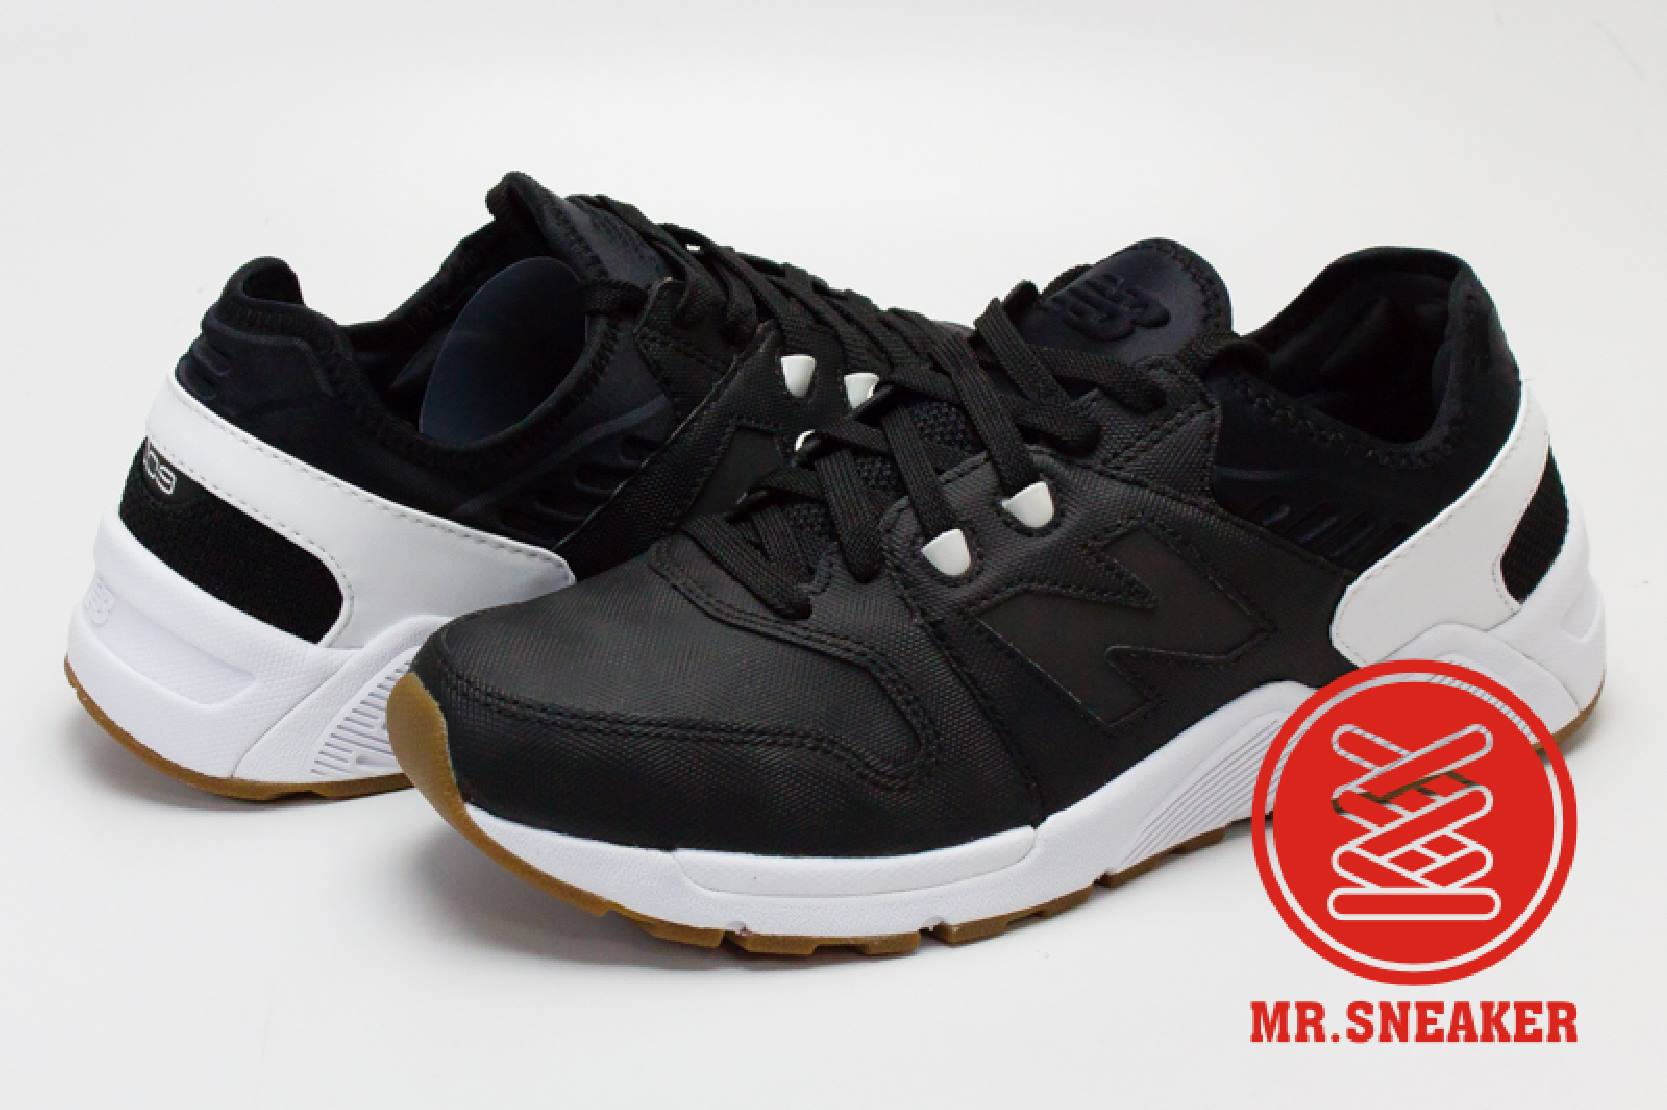 ☆Mr.Sneaker☆ New Balance ML009 UTB Reinvent 997 998 999 襪套式 Rapid Rebound 避震 似 武士鞋 黑色 男女段